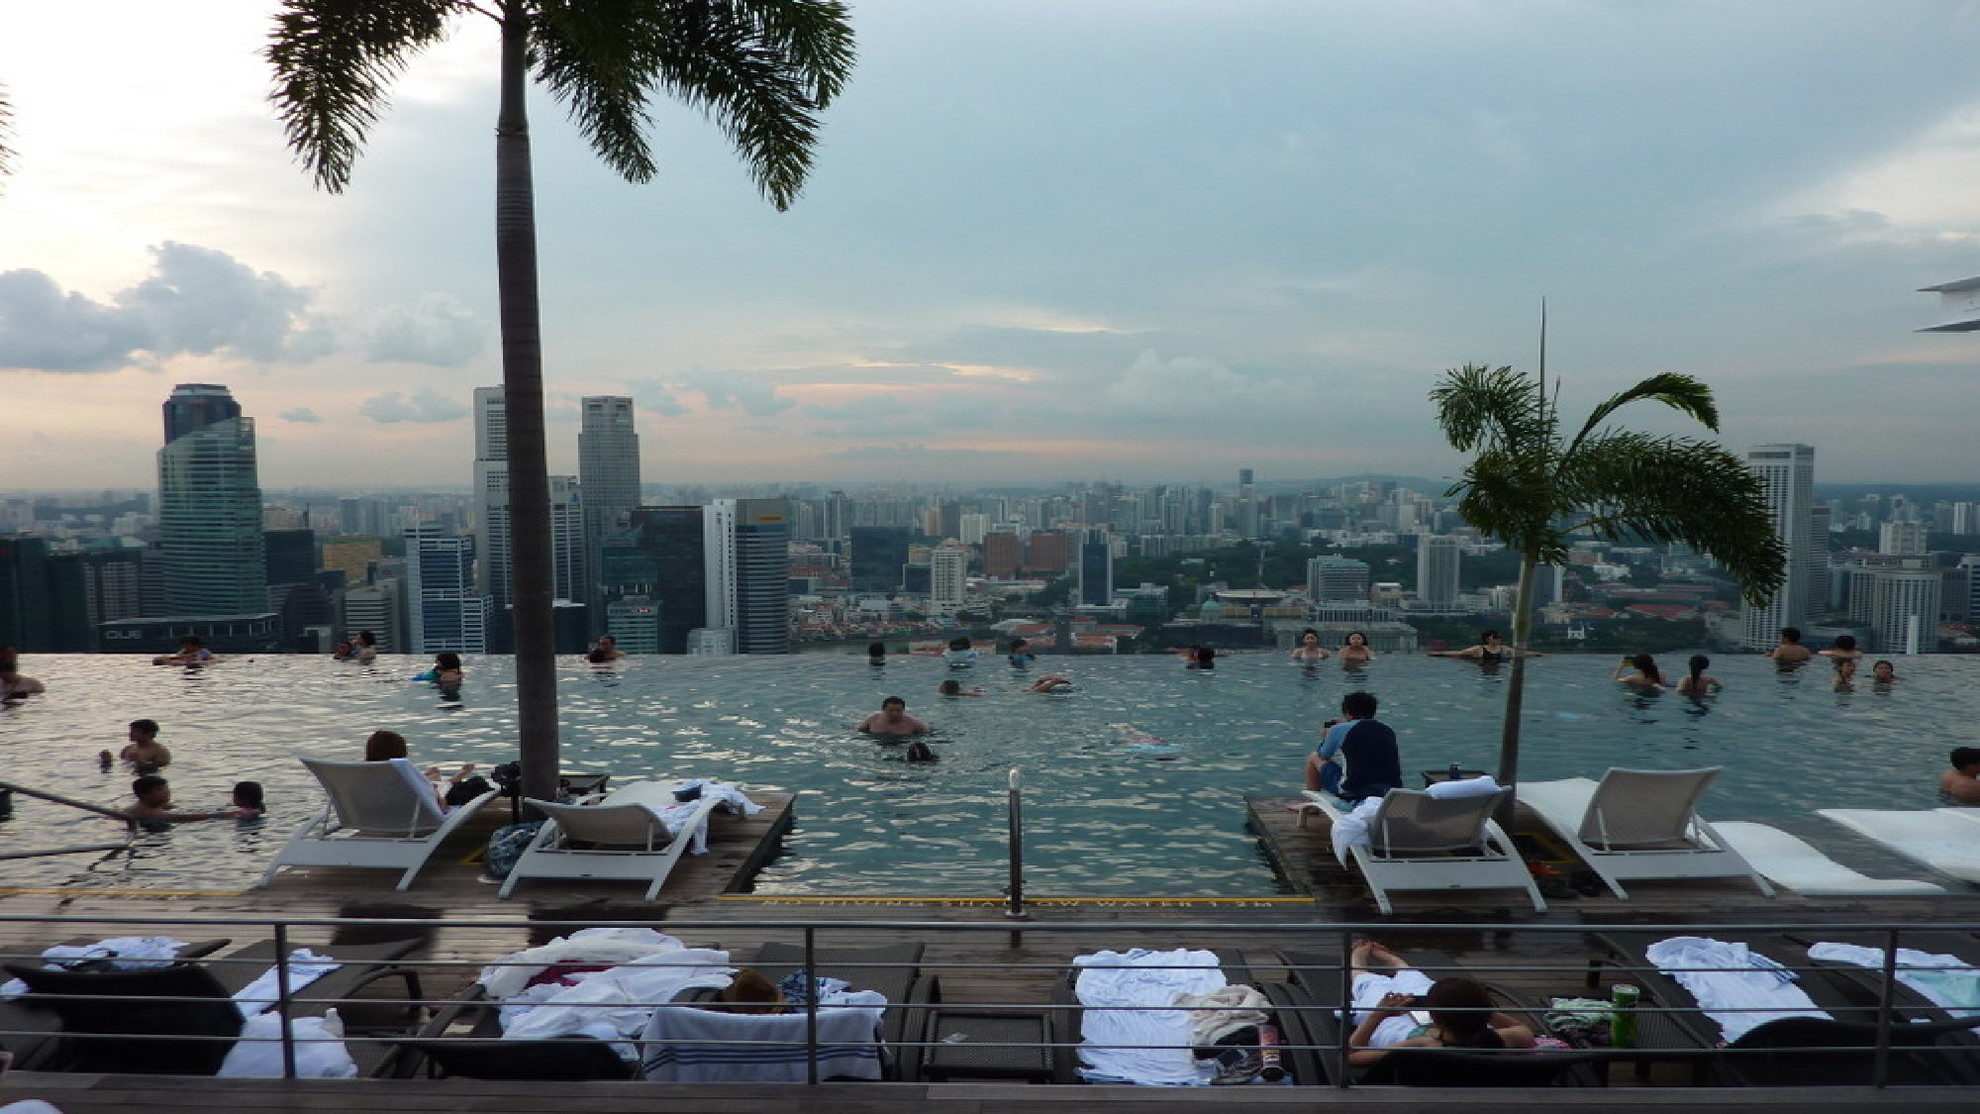 Singapore: the skyline of the garden city designed to be the city of the future